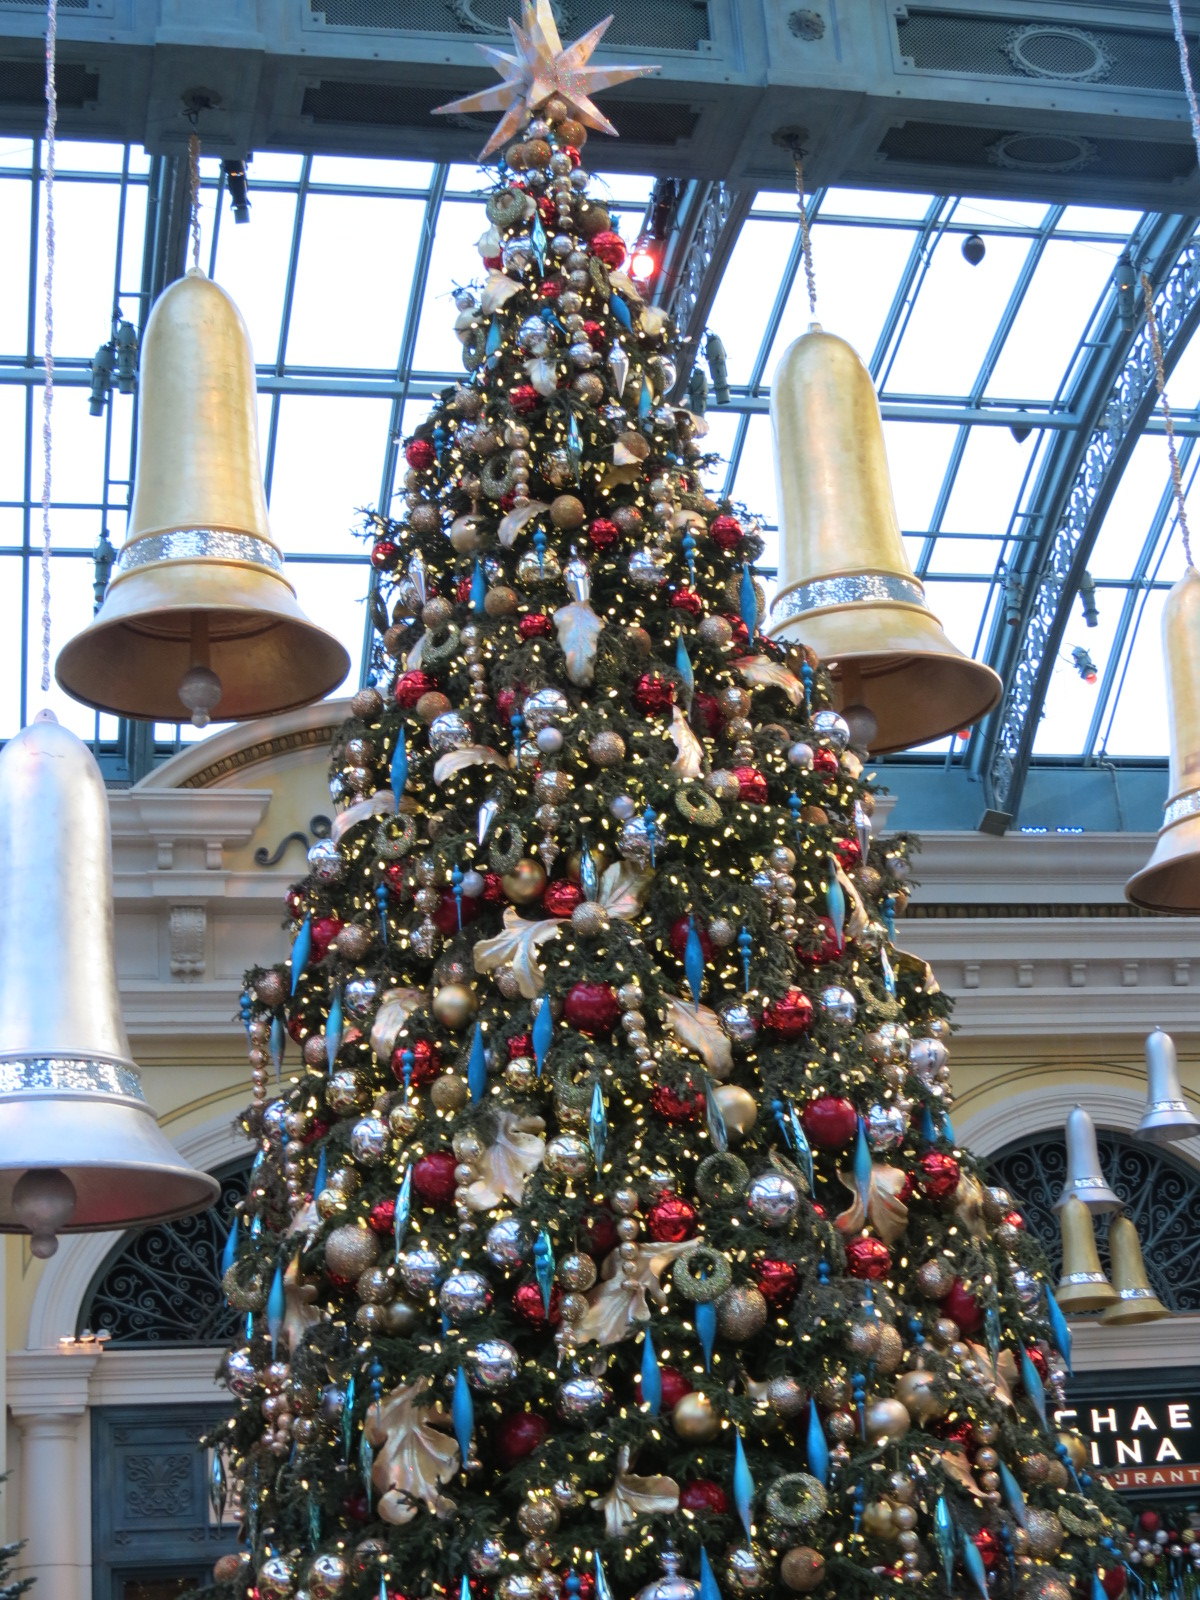 Christmas tree in the Bellagio